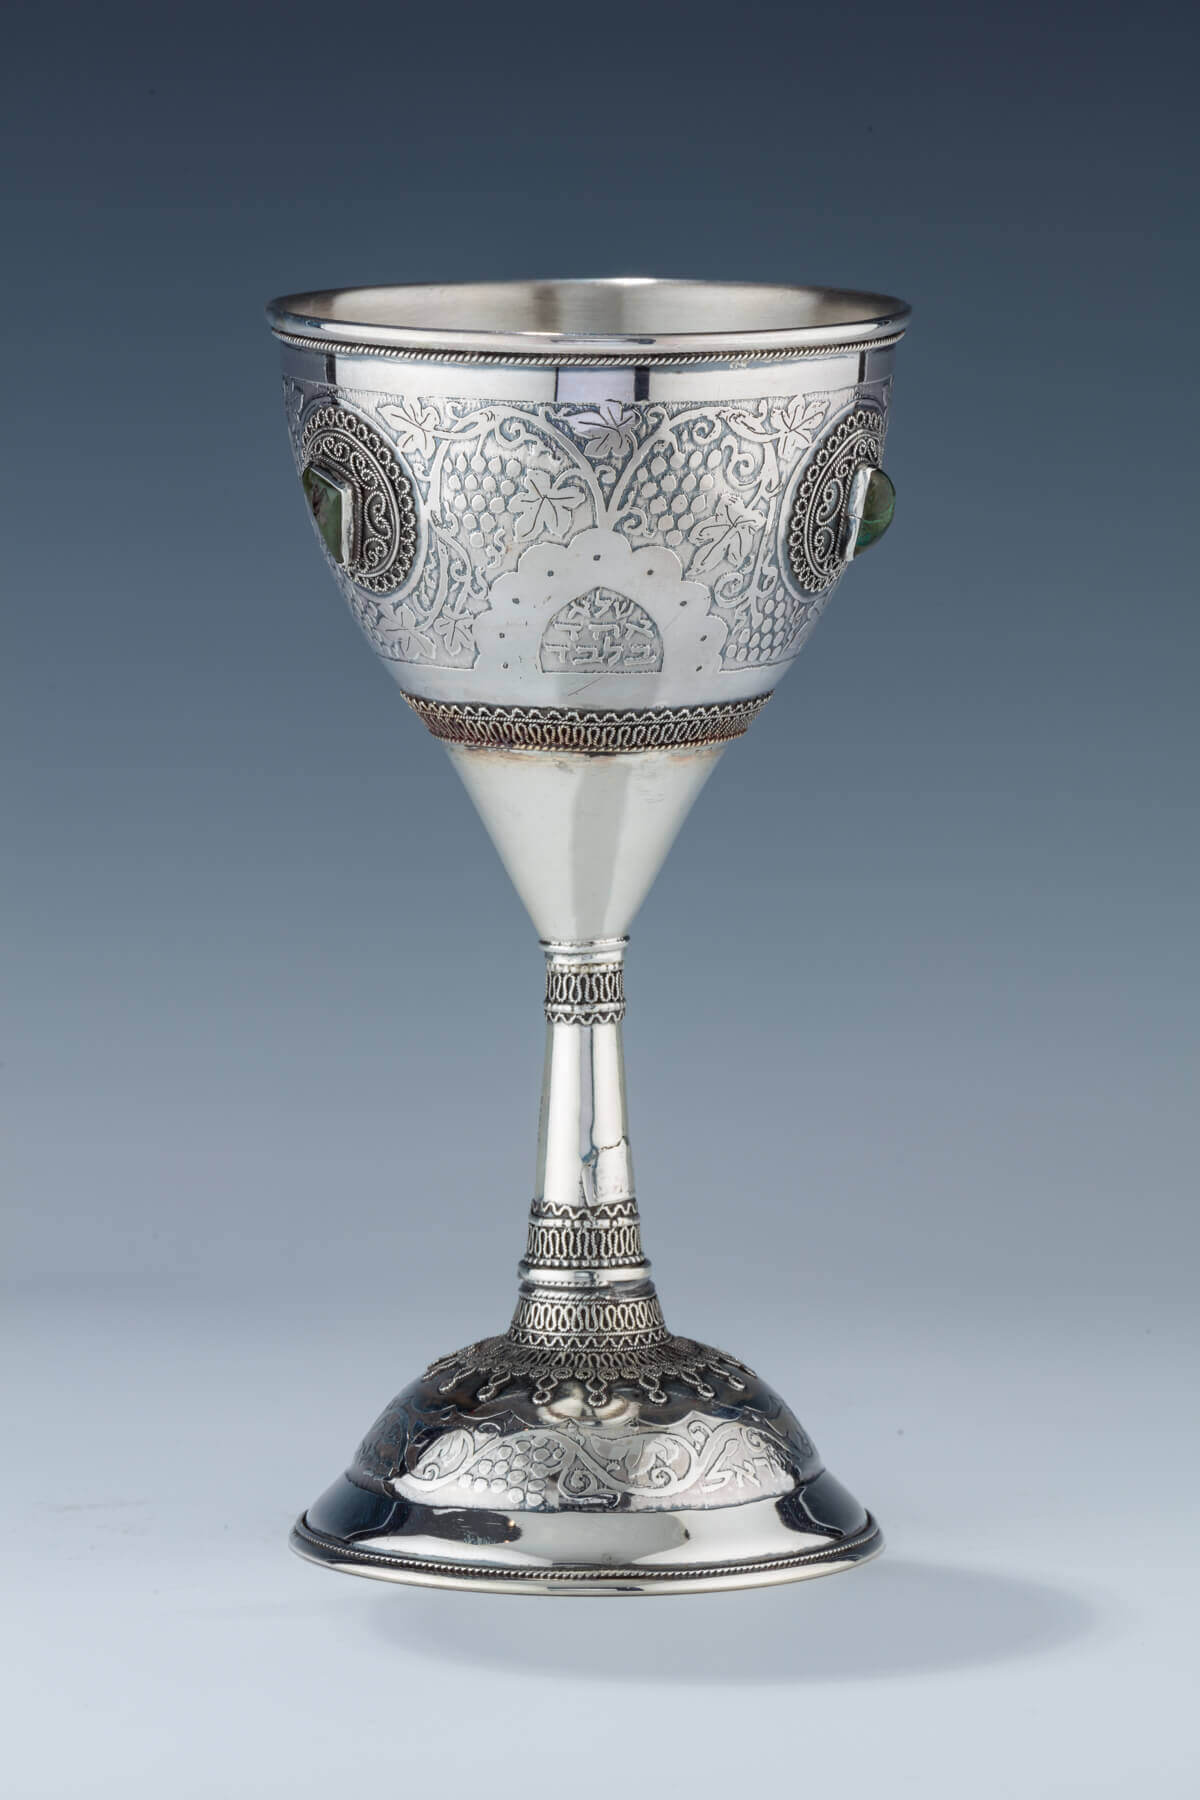 035. A LARGE STERLING SILVER PASSOVER GOBLET BY THE BEZALEL SCHOOL